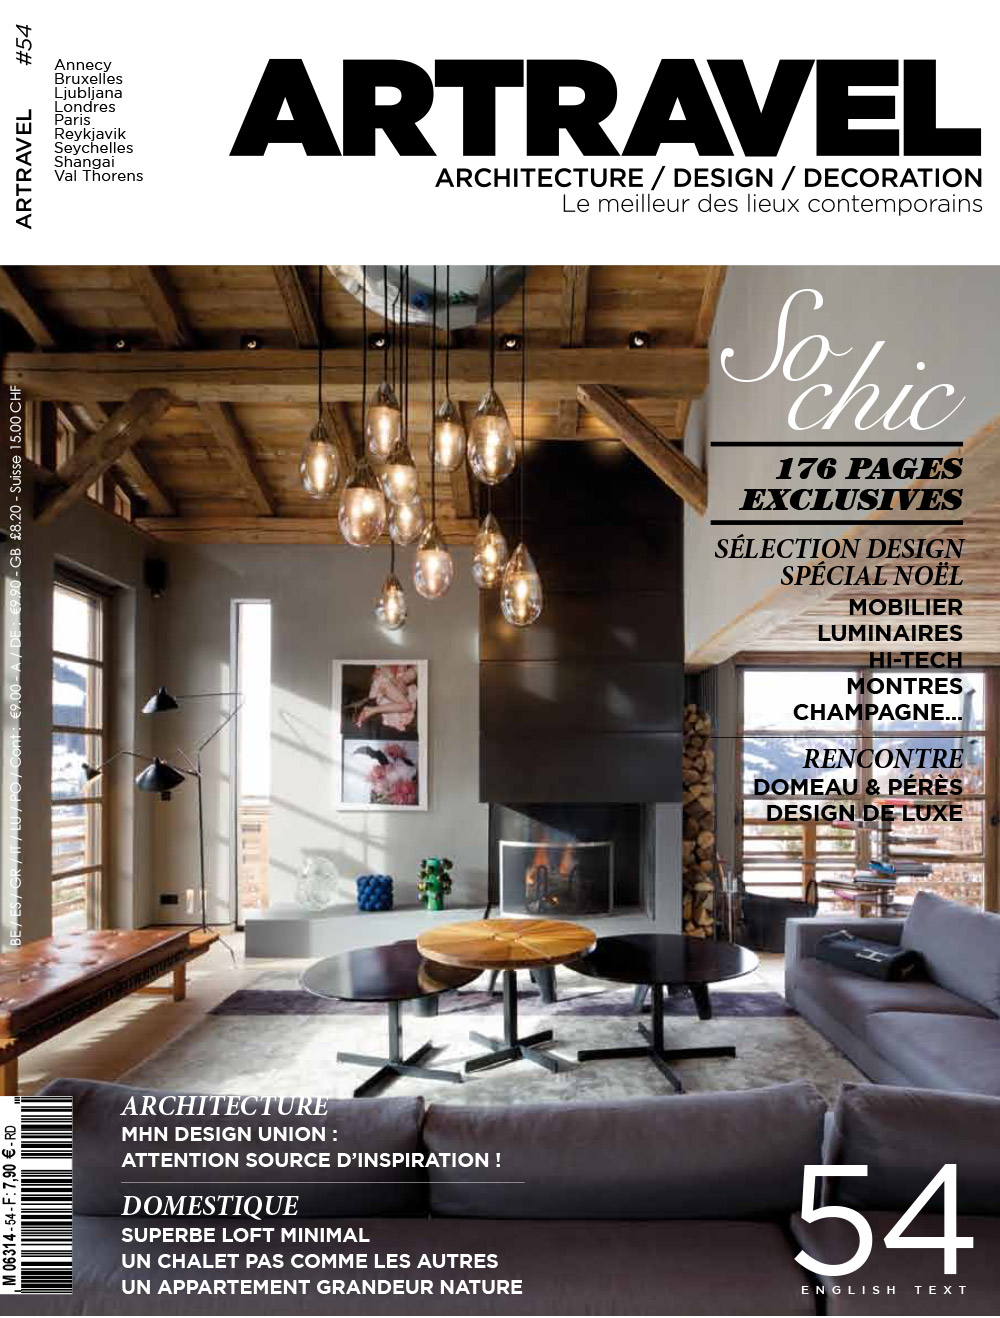 Art Decoration Magazine English Press Review Of The Press Relations Agency International Media Hotel